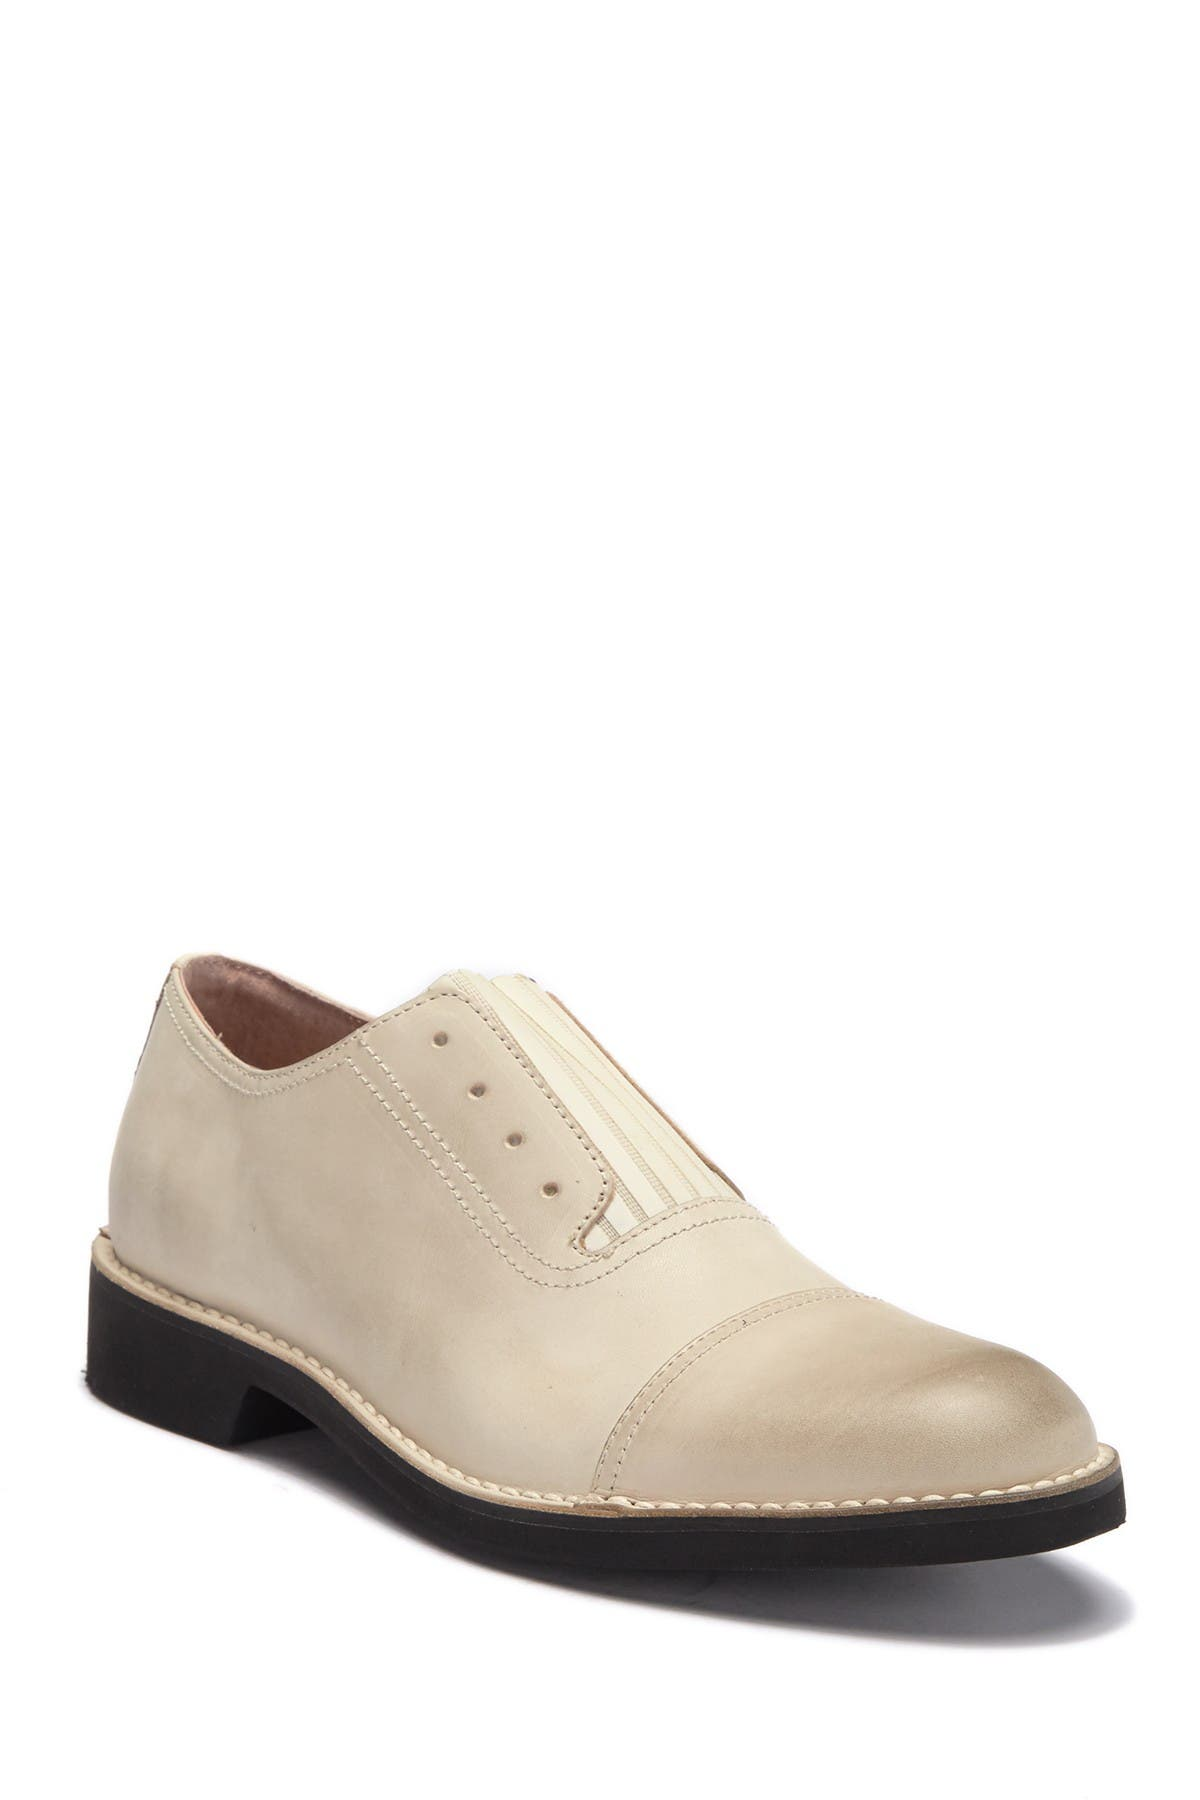 Image of Vintage Foundry The Rossi Leather Oxford